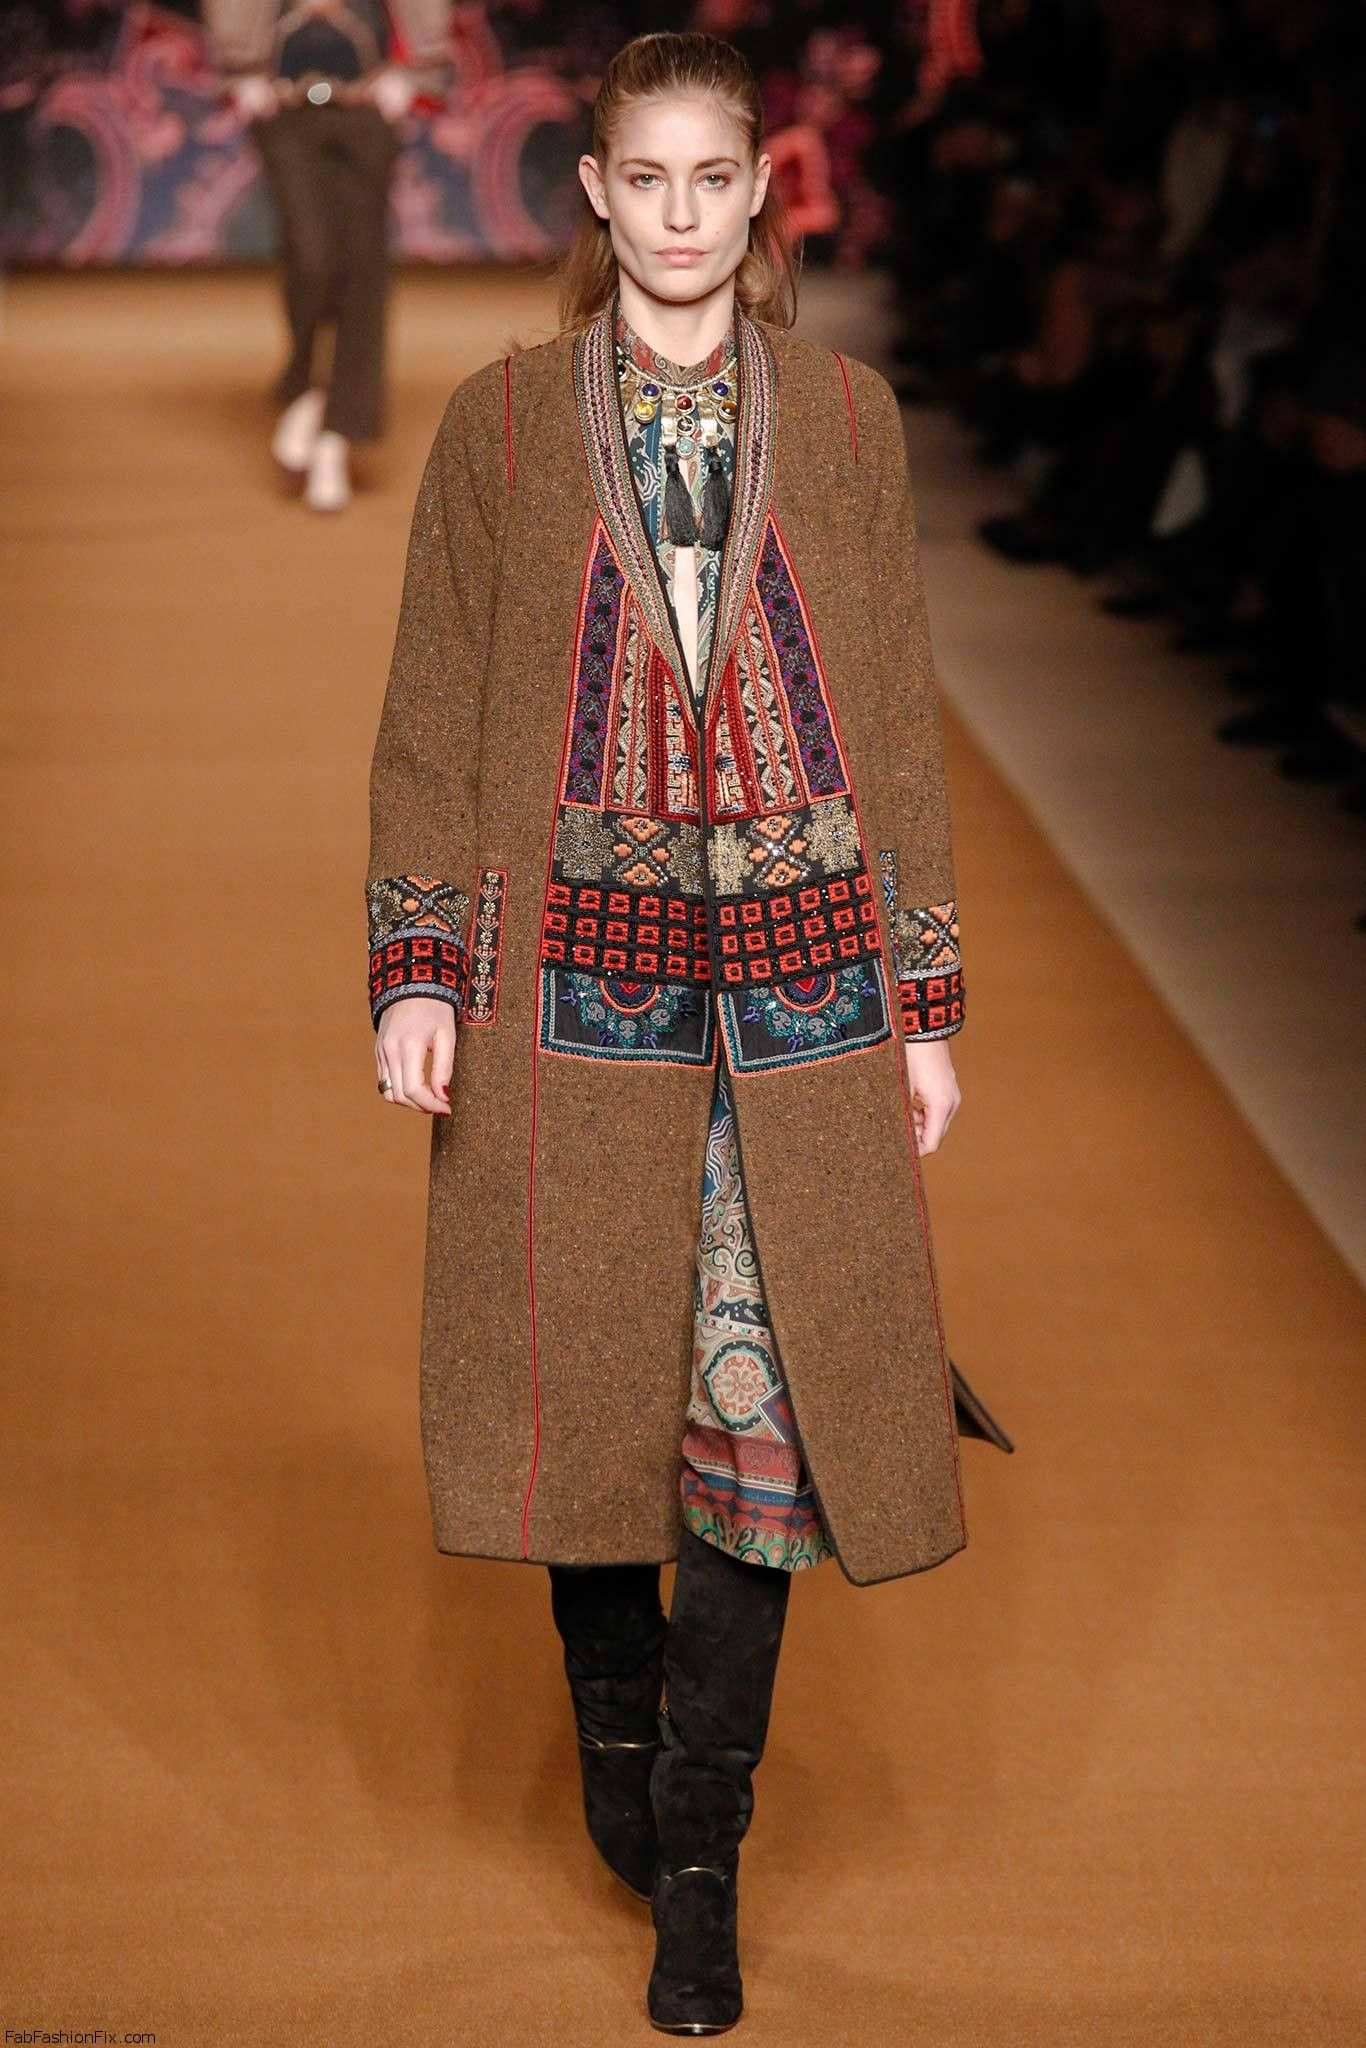 Etro Fall Winter 2014 Collection Milan Fashion Week Fab Fashion Fix